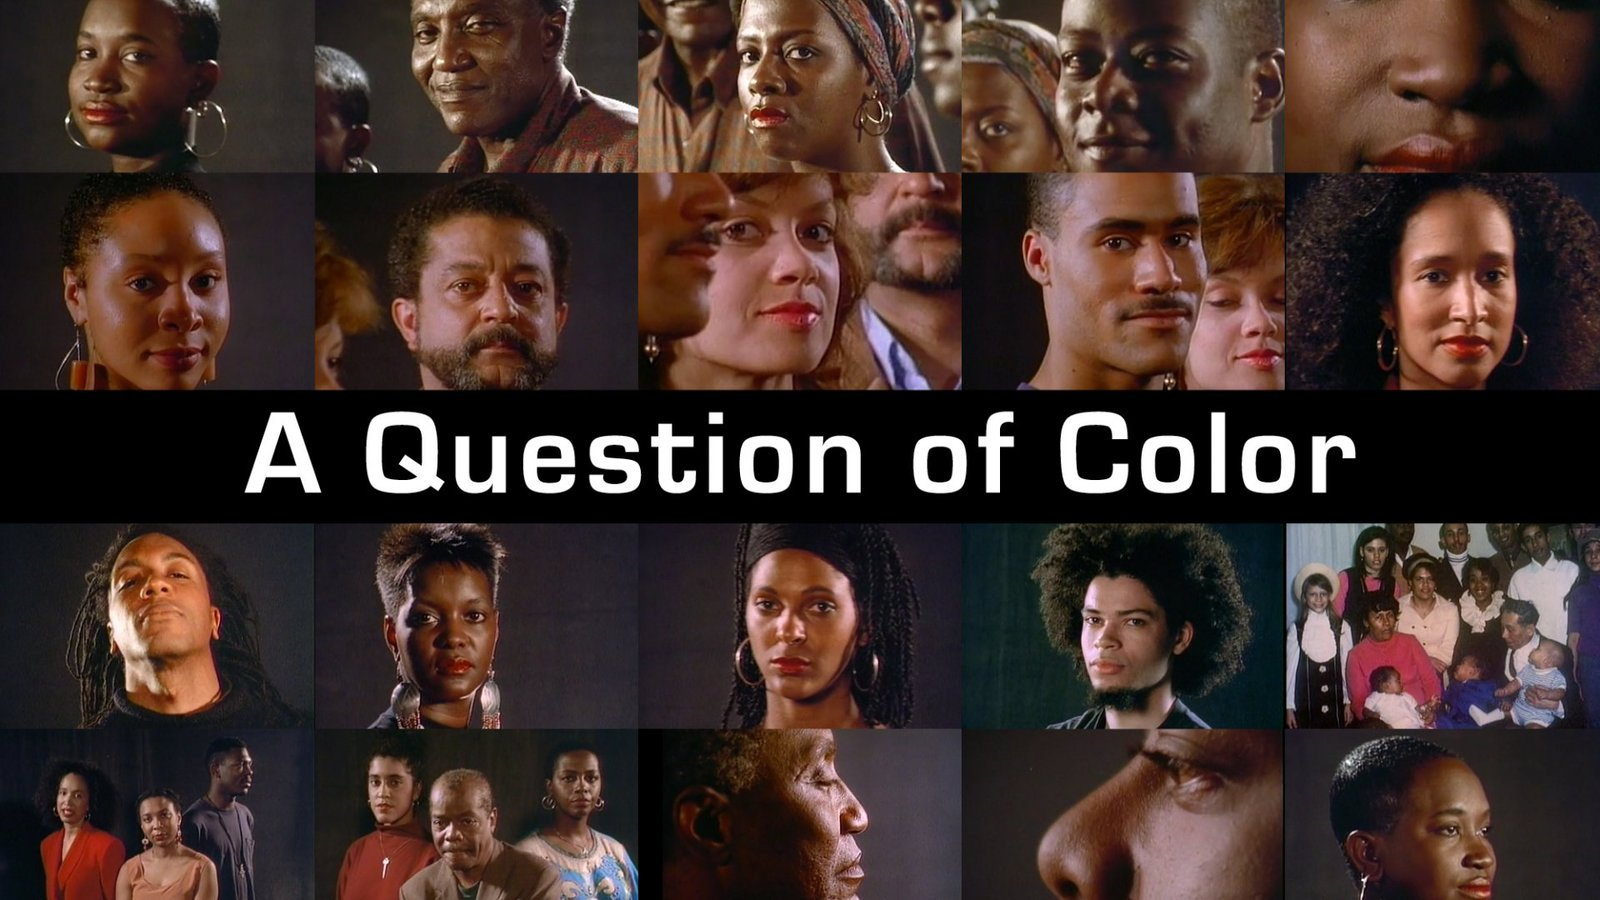 """A Question of Color - The Subconscious World of """"Color Consciousness"""""""